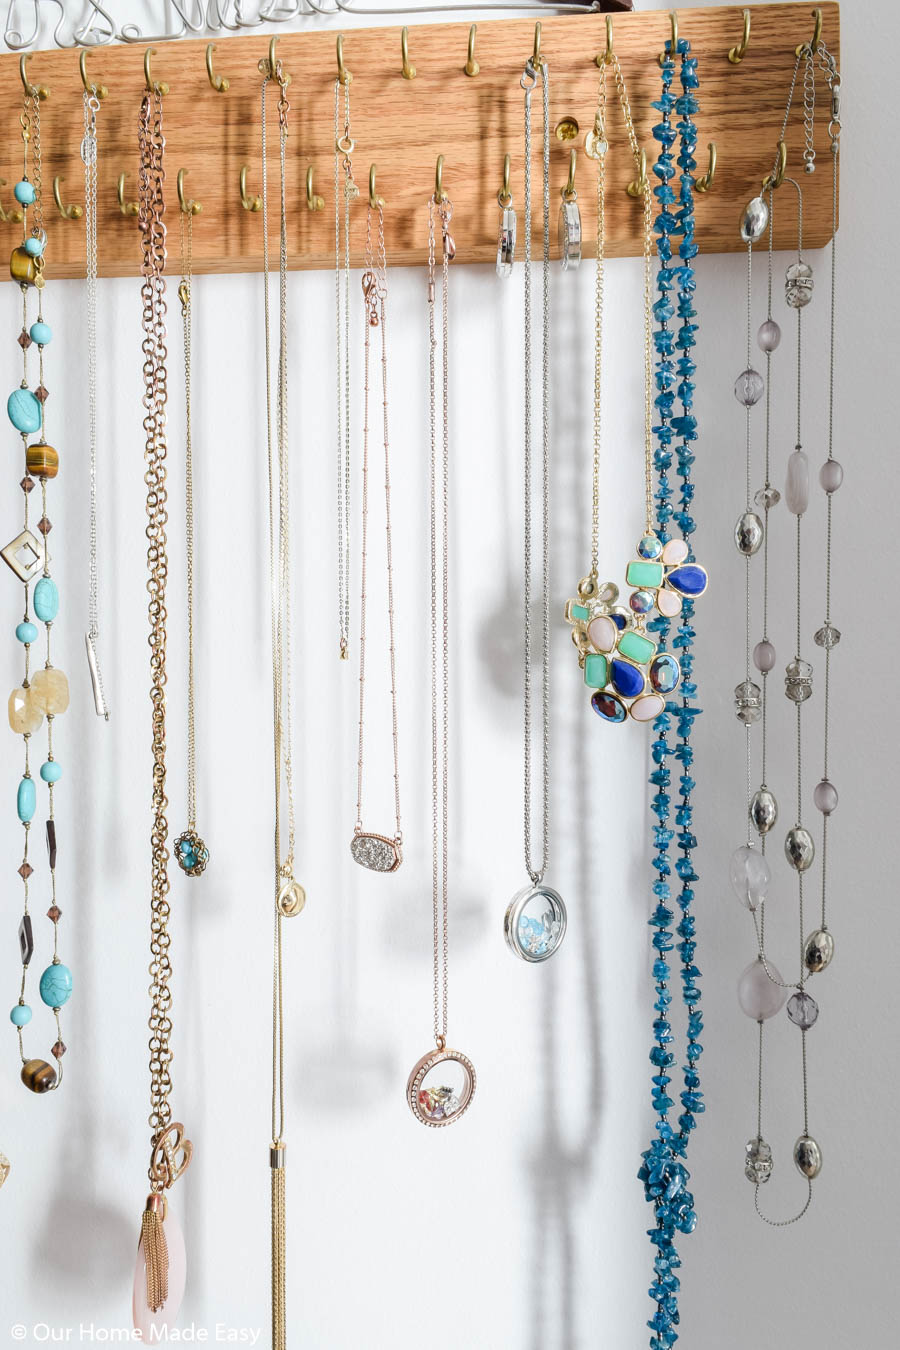 I decluttered my necklace collection and kept my favorite pieces, using this necklace rack to organize my jewelry